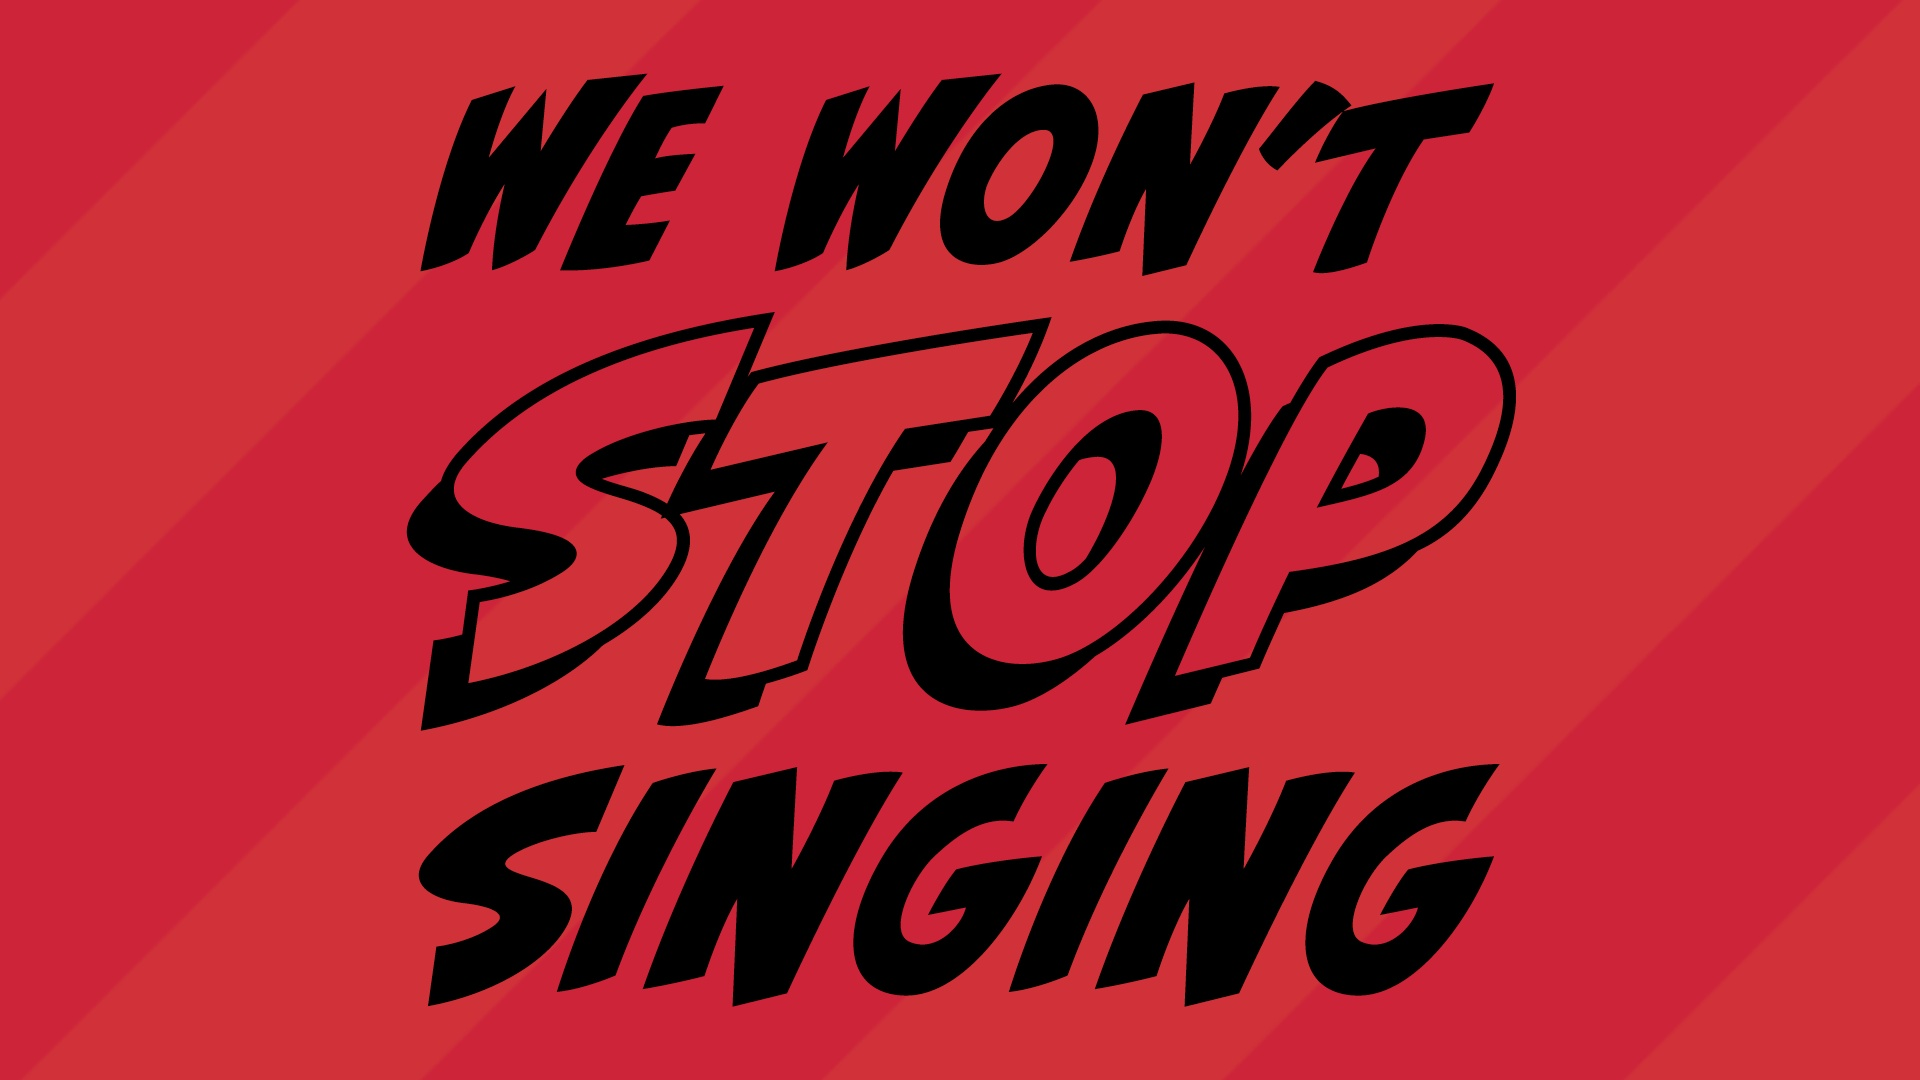 We won't stop singing